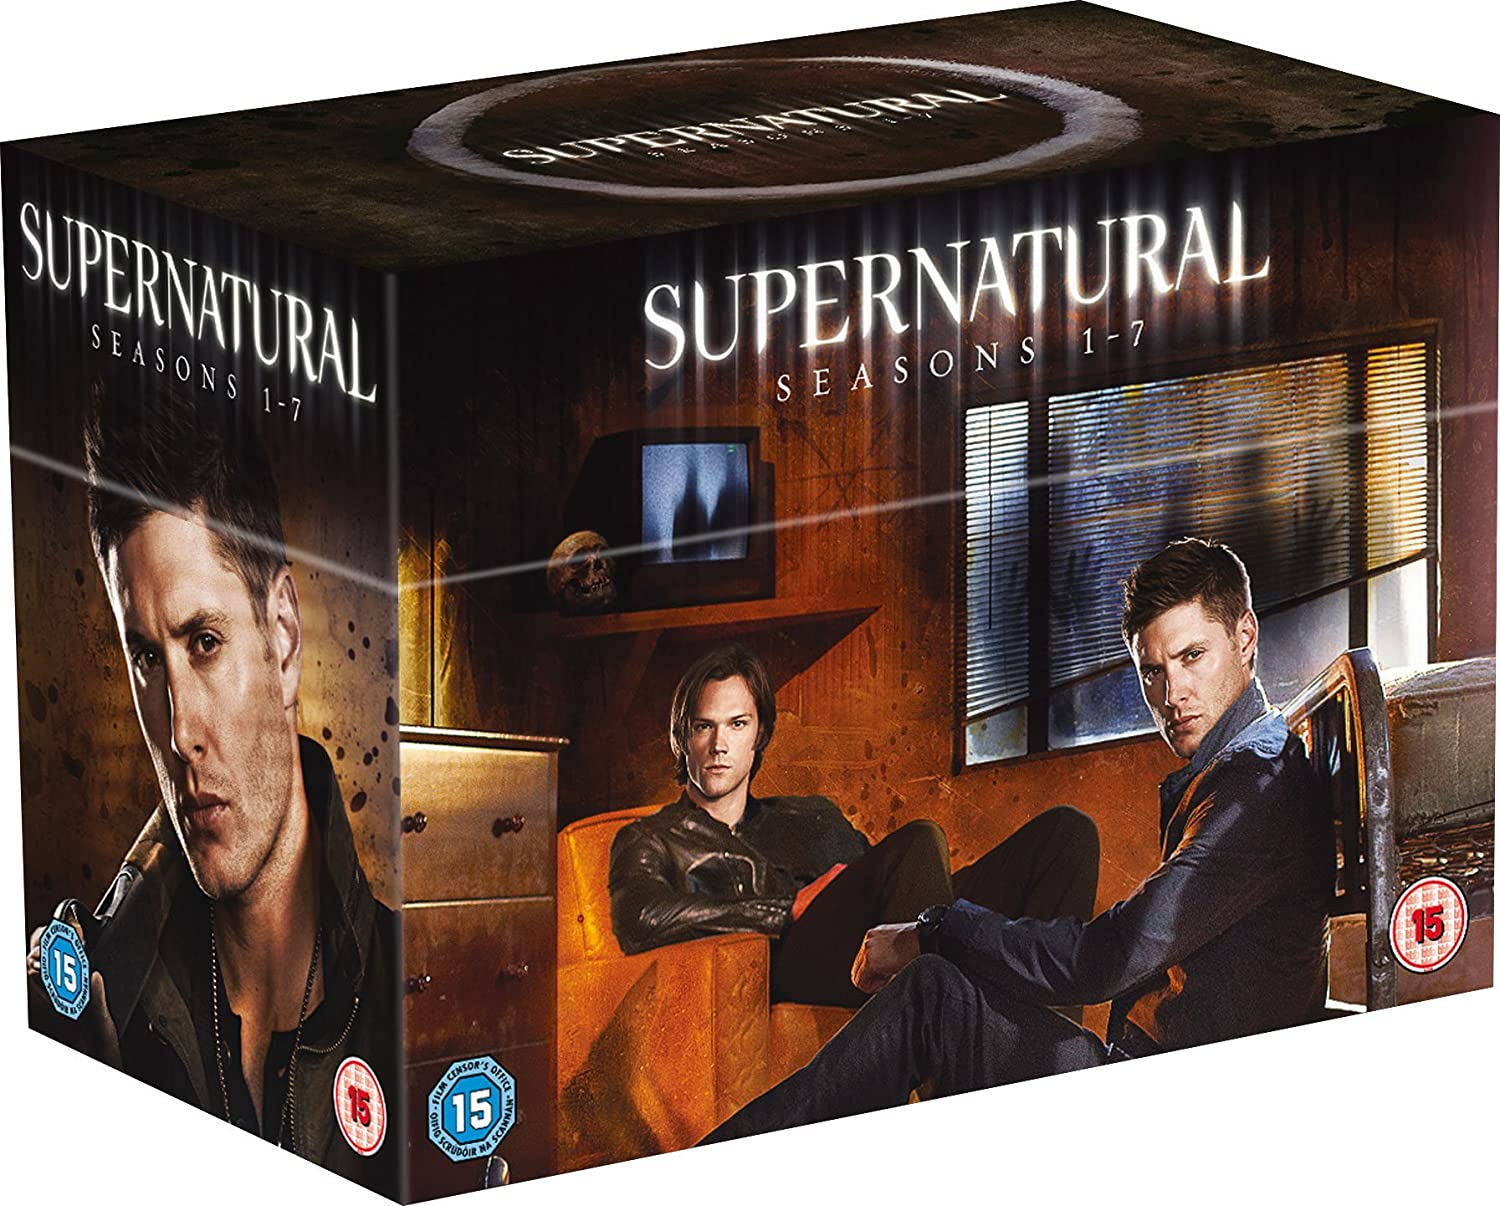 Supernatural-Series 1-7-Comple [Reino Unido] [DVD]: Amazon.es: Movie, Film: Cine y Series TV